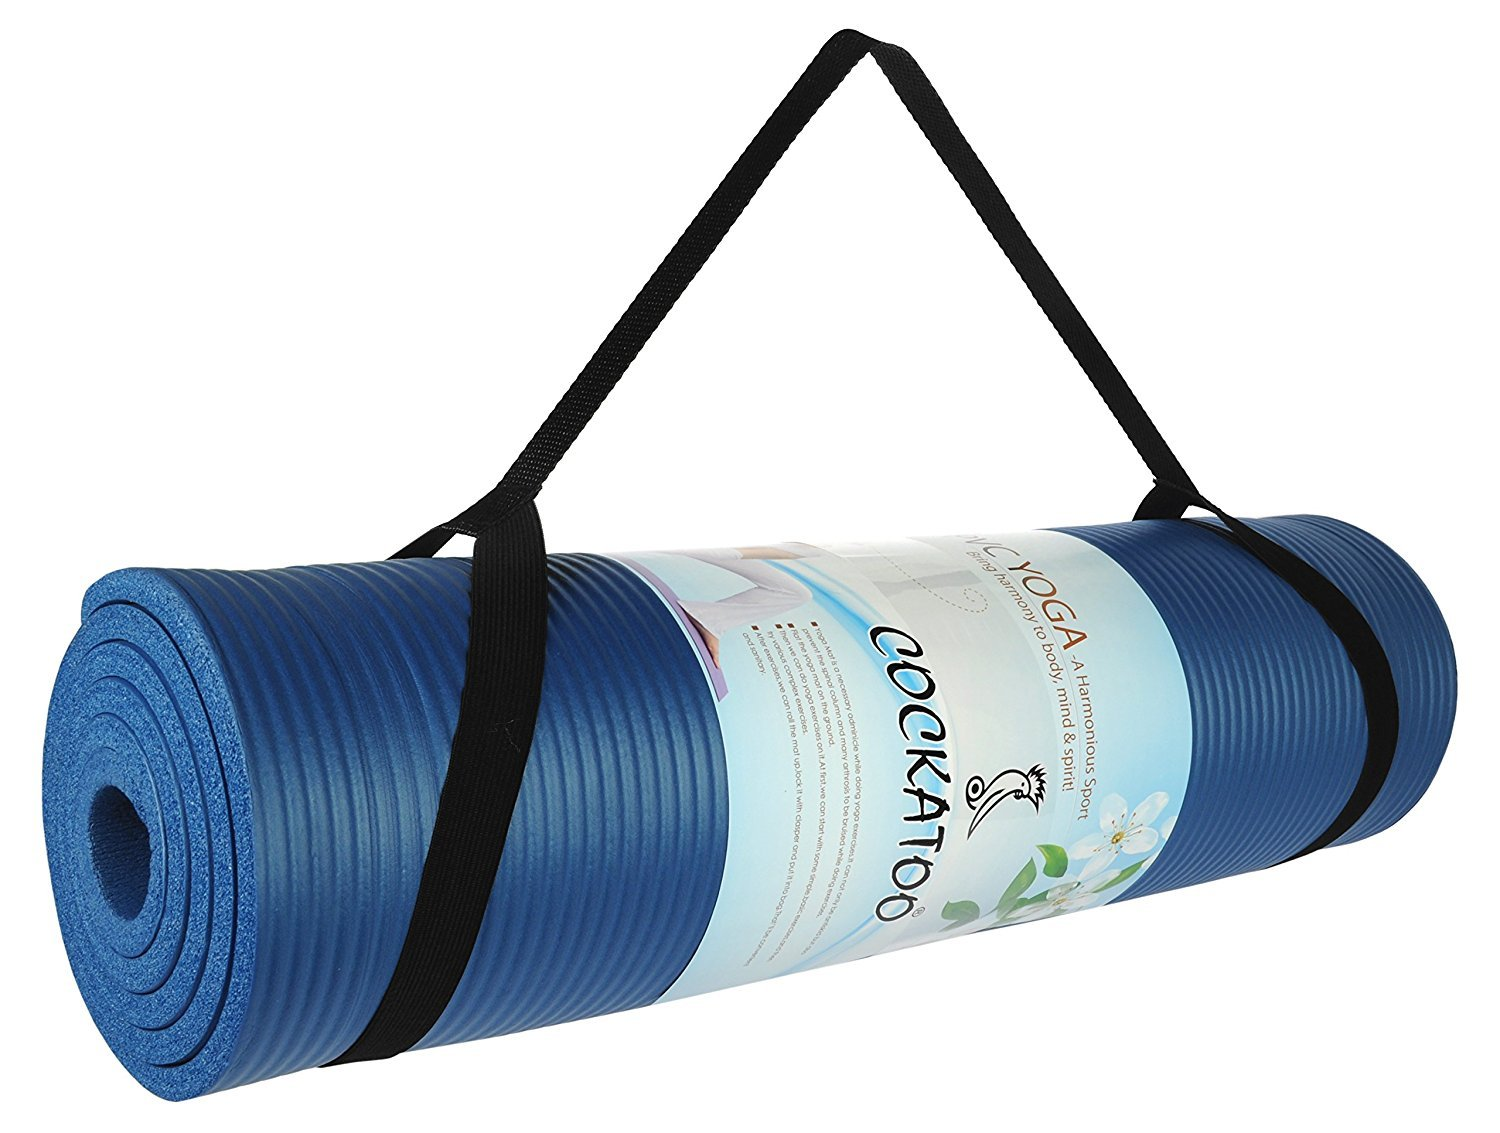 Cockatoo 10mm 12mm Yoga Mat With Straps Exercise Mat Colour May Vary Amazon In Sports Fitness Outdoors